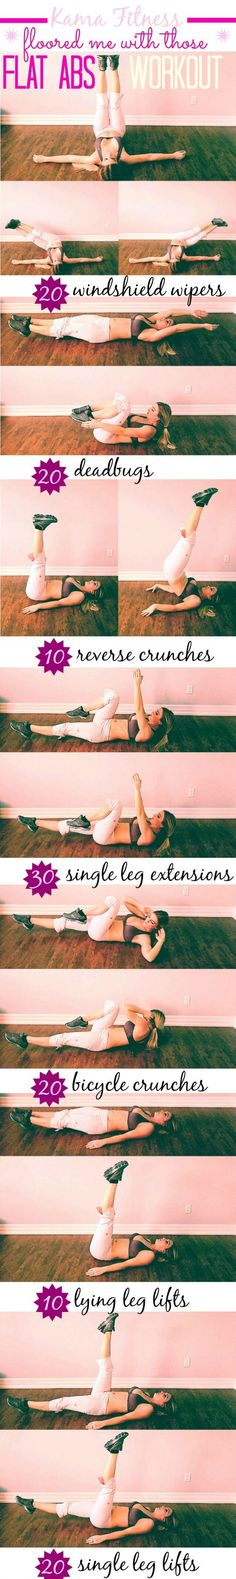 Get sexy toned, abs with these 8 intense but fun abs shredding exercises. Pin now, check it later :)